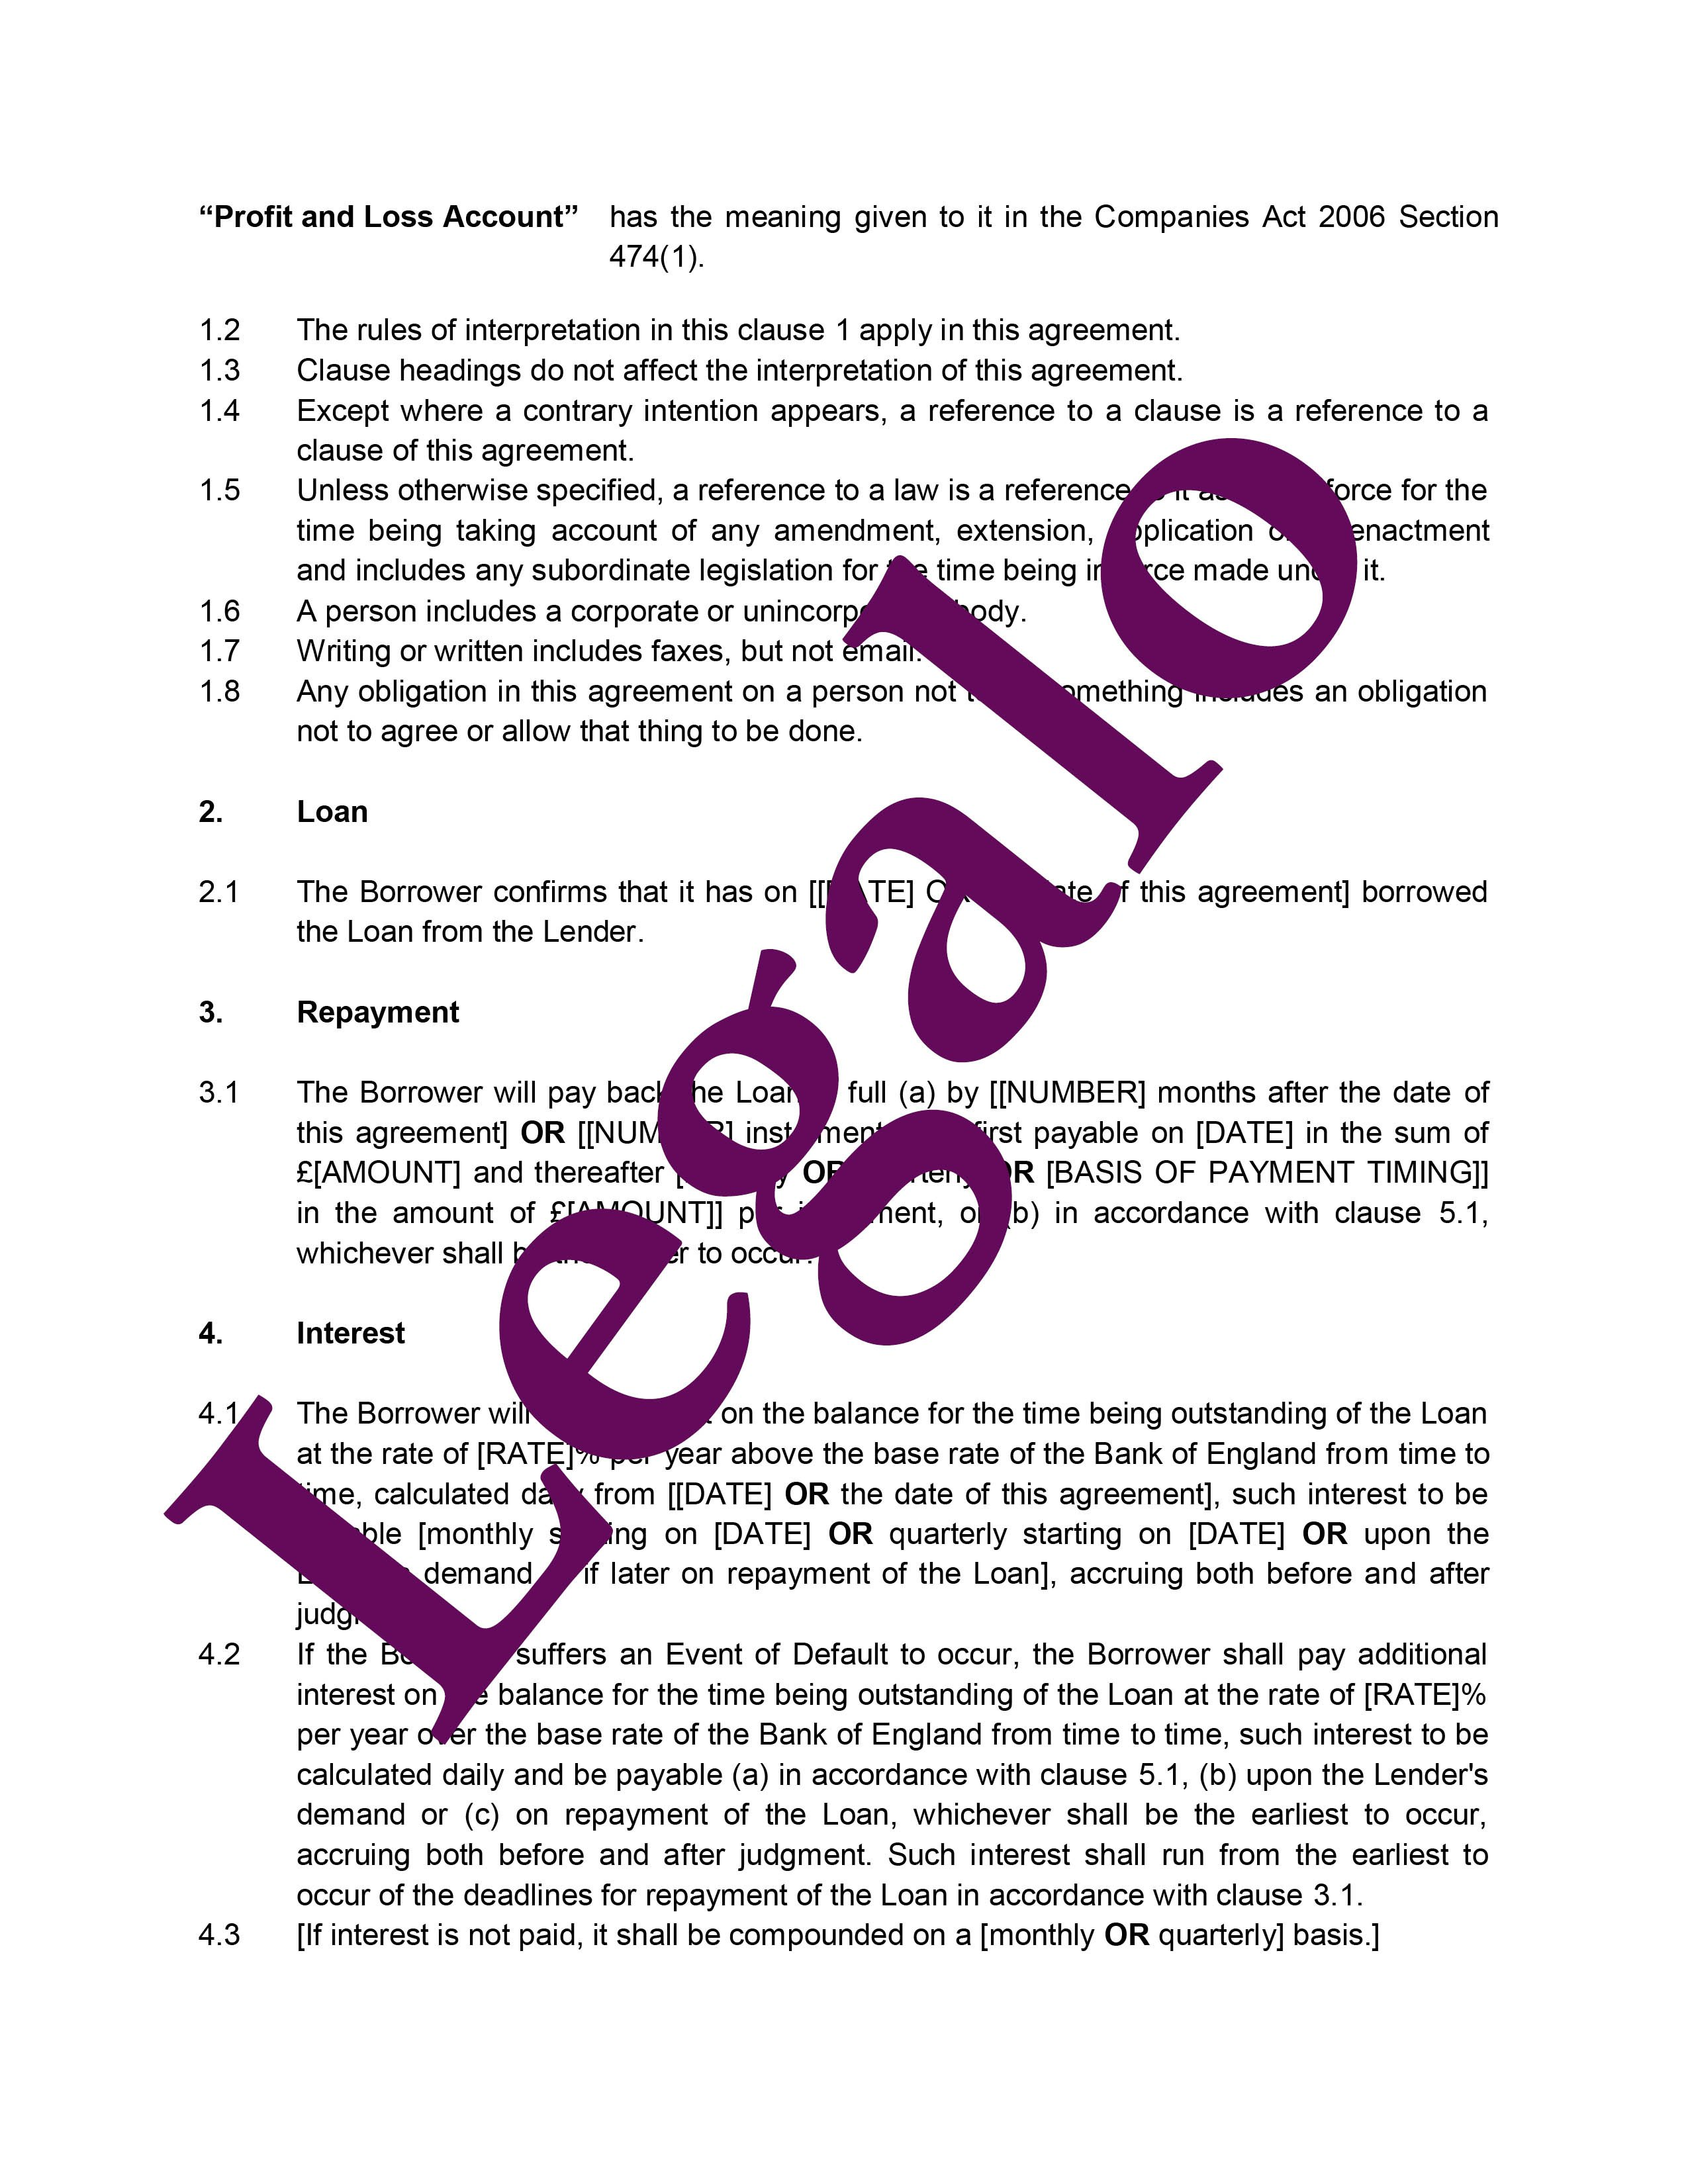 Guaranteed loan agreement preview image page 2